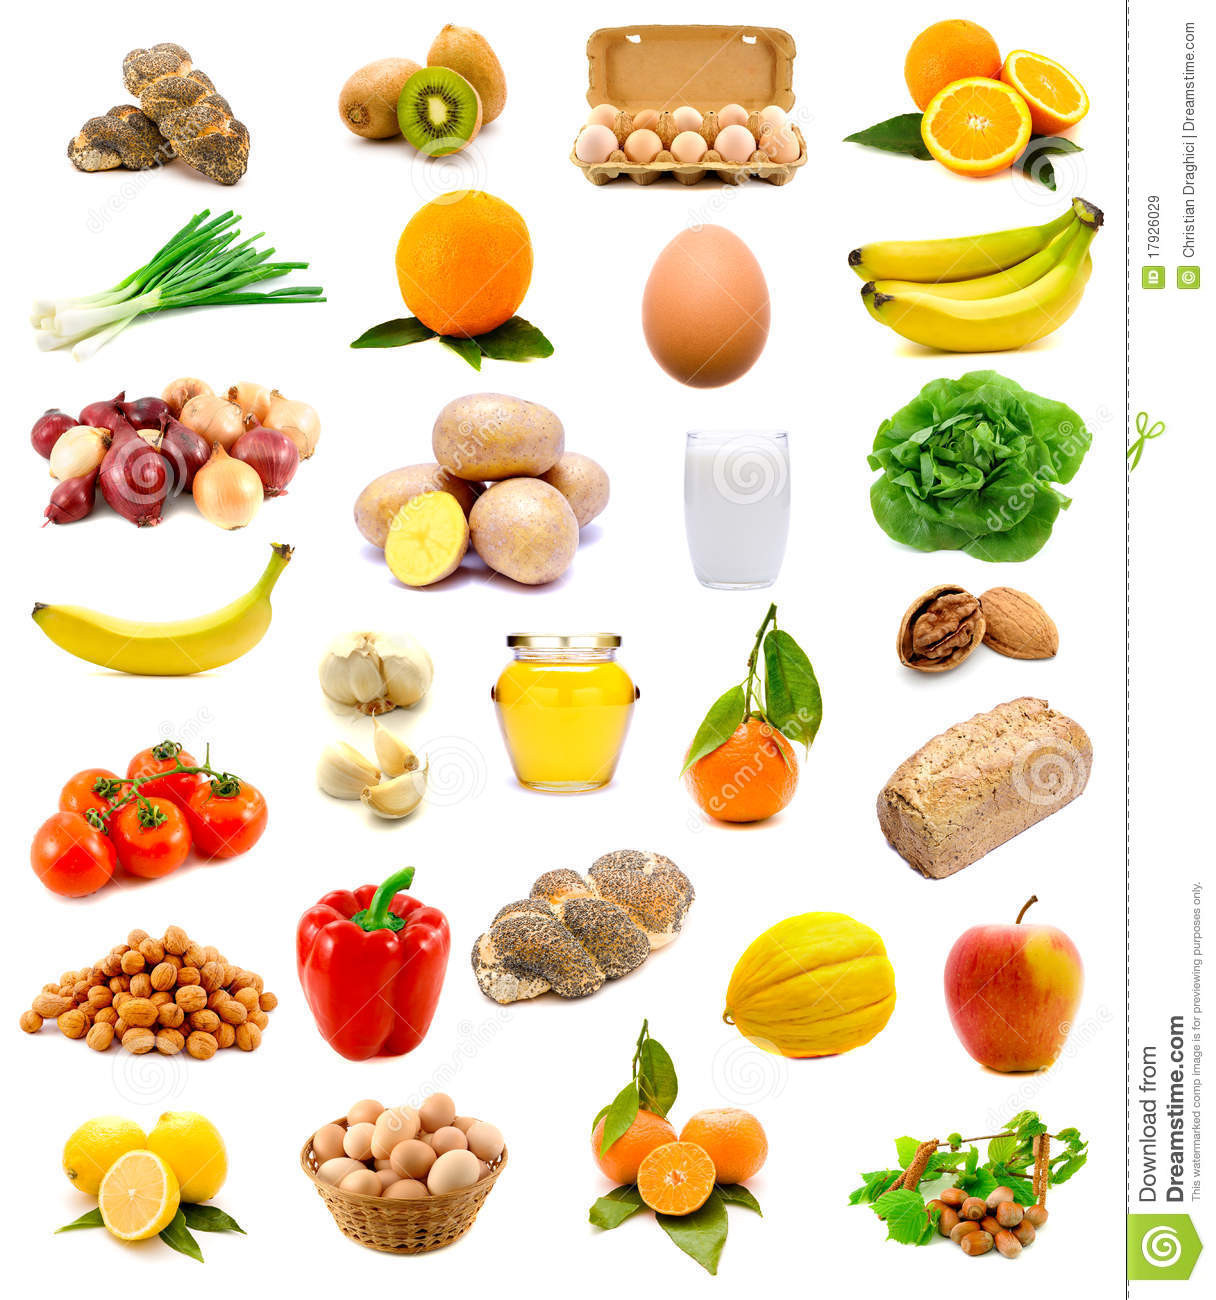 Healthy Group Snacks  Healthy Food Fruits And Ve ables Stock Image Image of